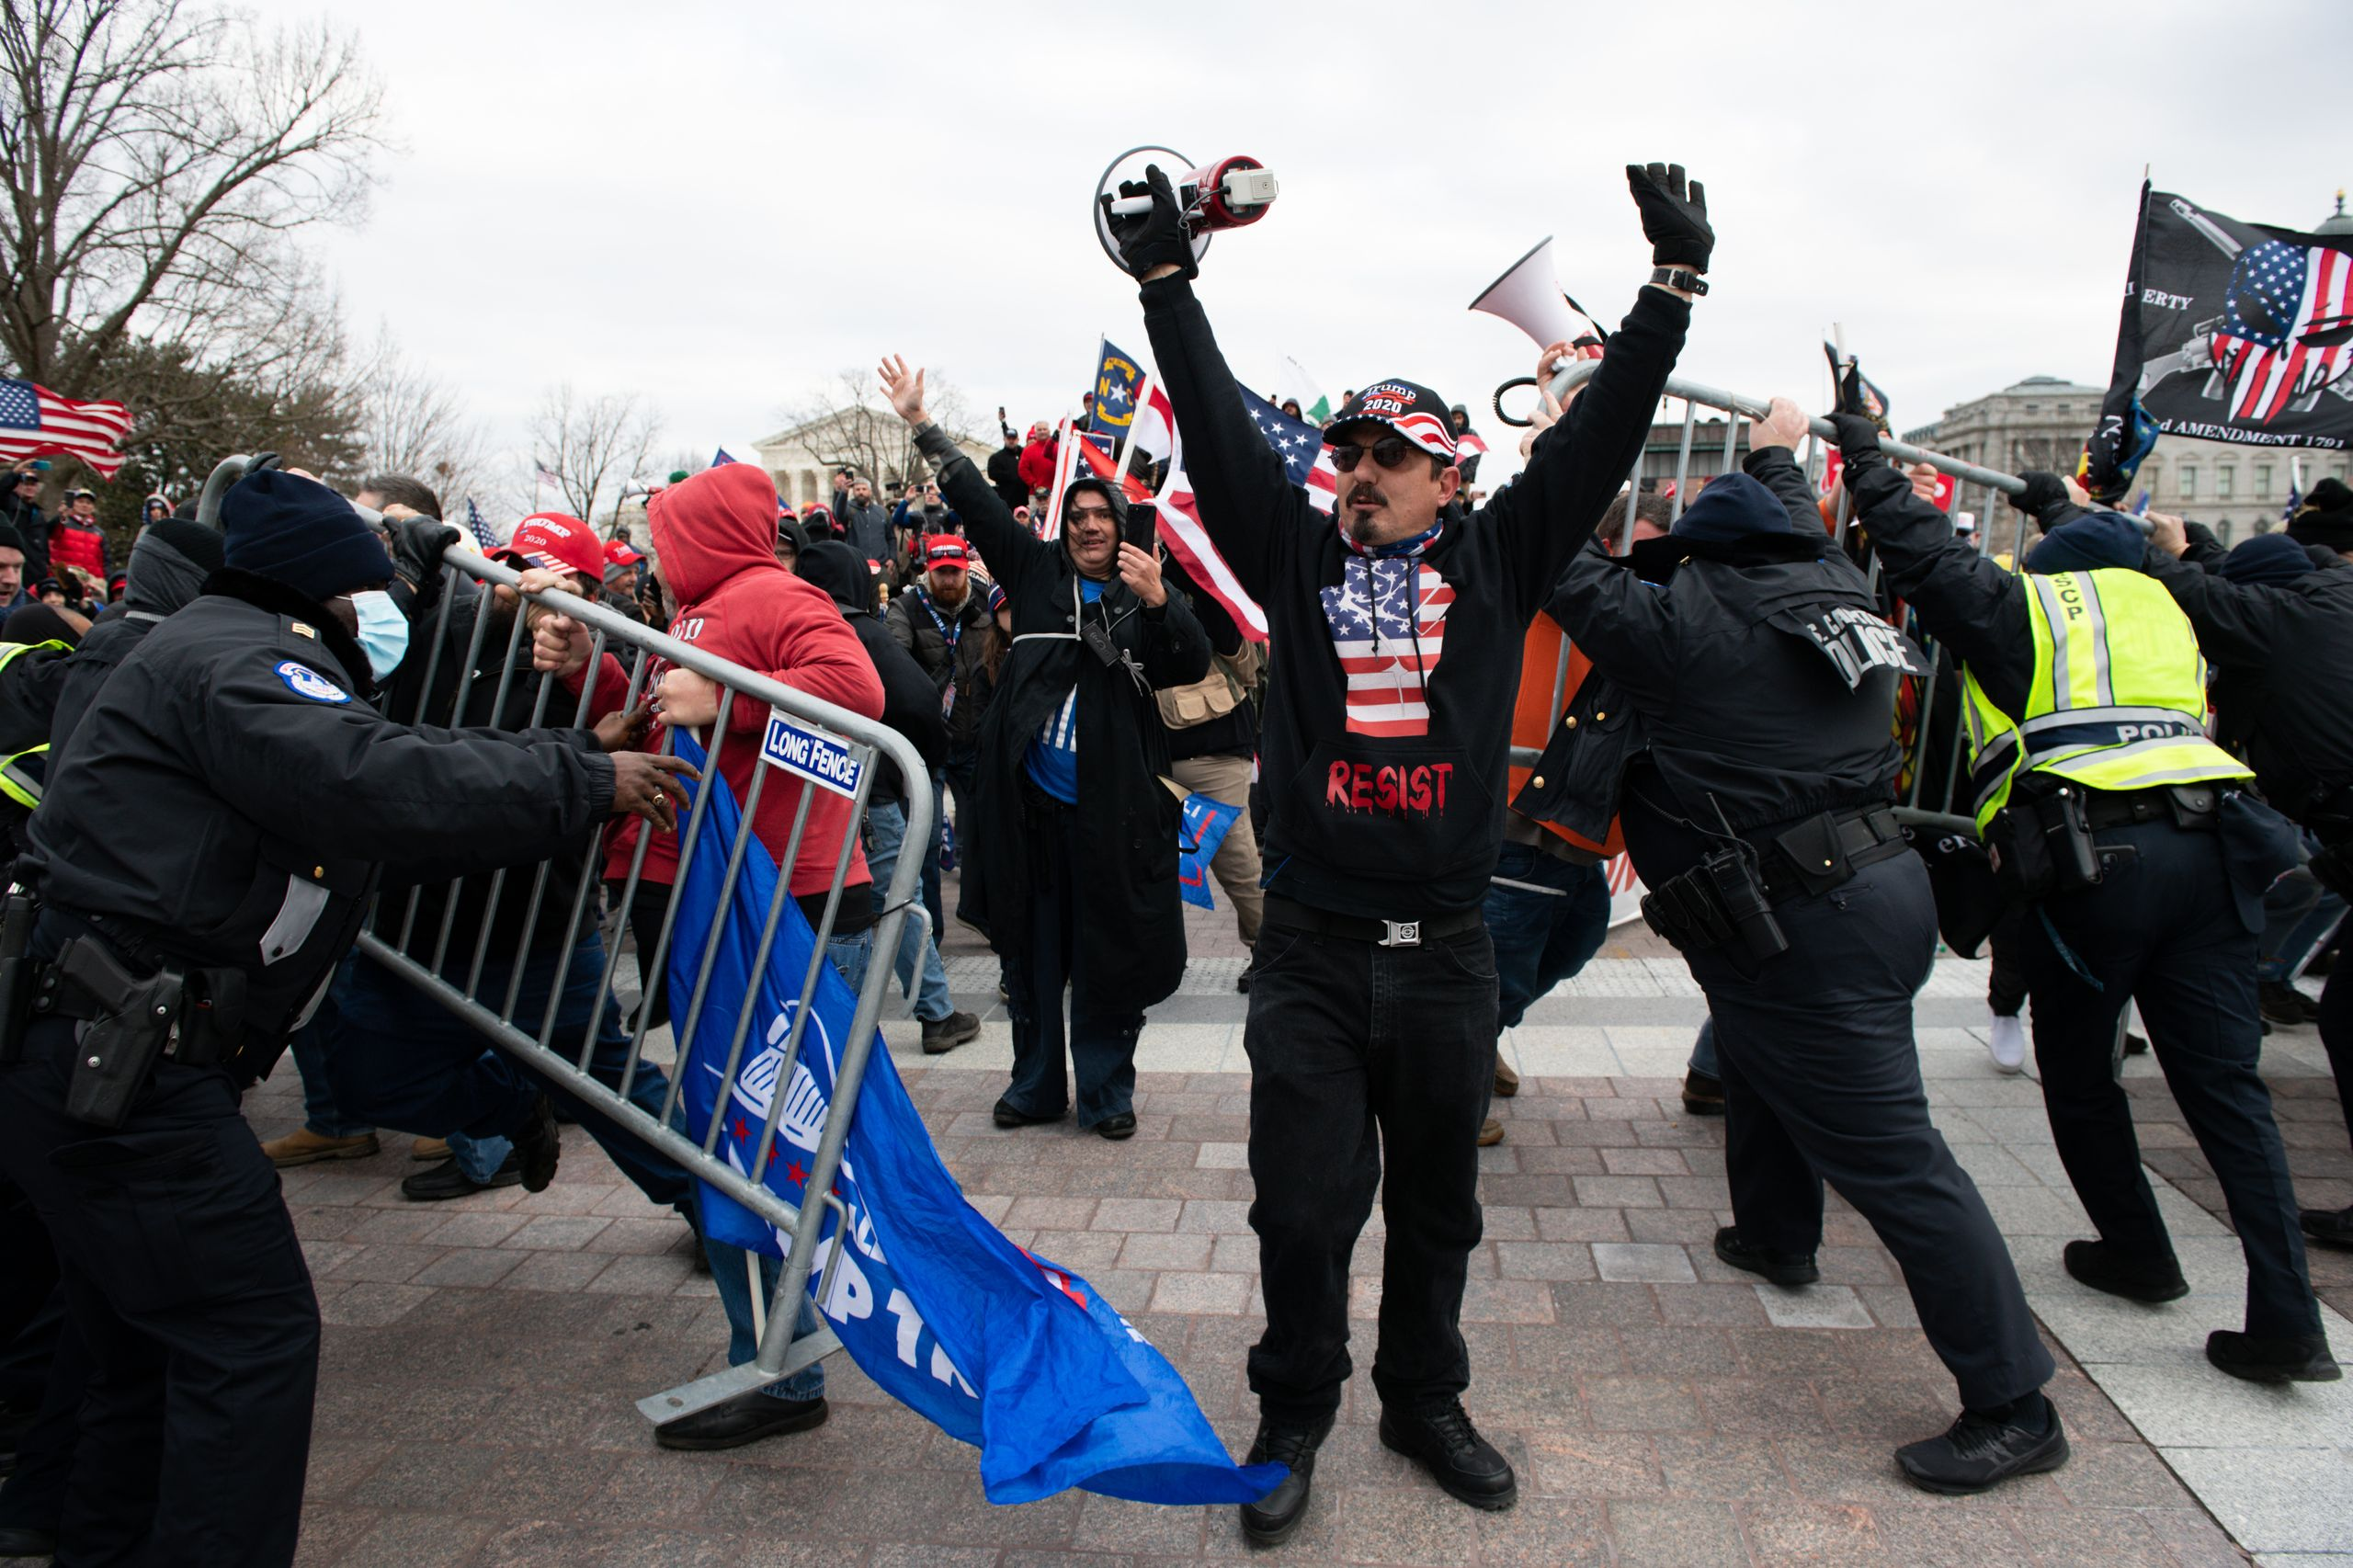 Demonstrators breach security fencing during a protest outside the U.S. Capitol in Washington, D.C., U.S., on Wednesday, Jan.